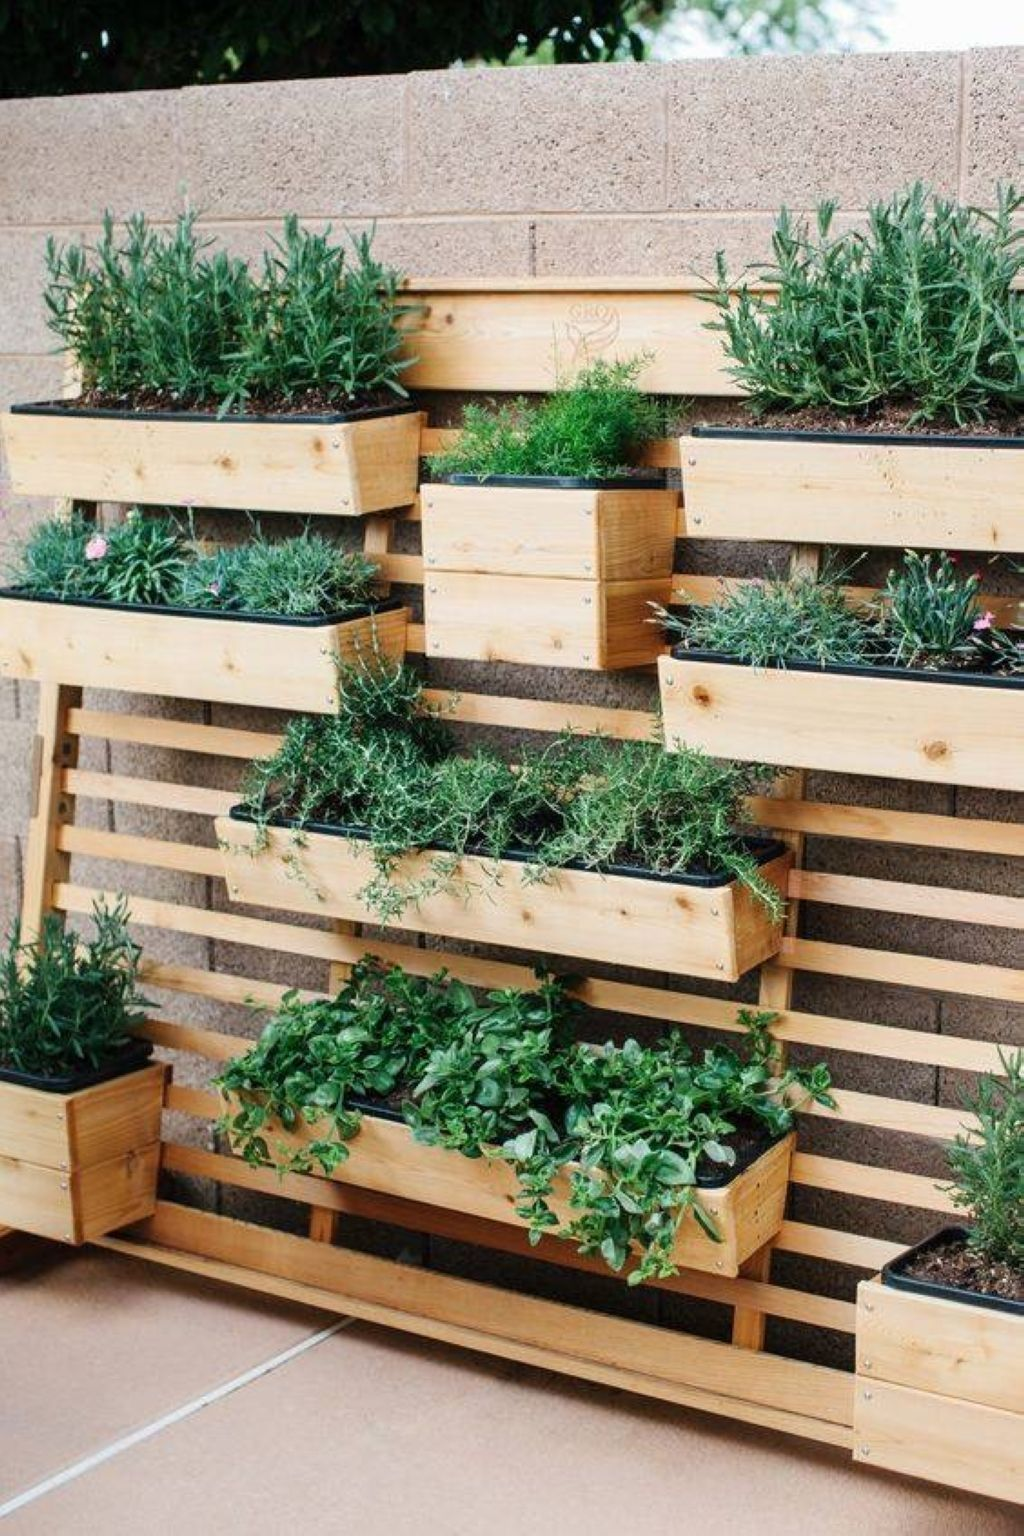 52 DIY Flower Box Wall Ideas for Frontyard Decoration | Diy flower ...